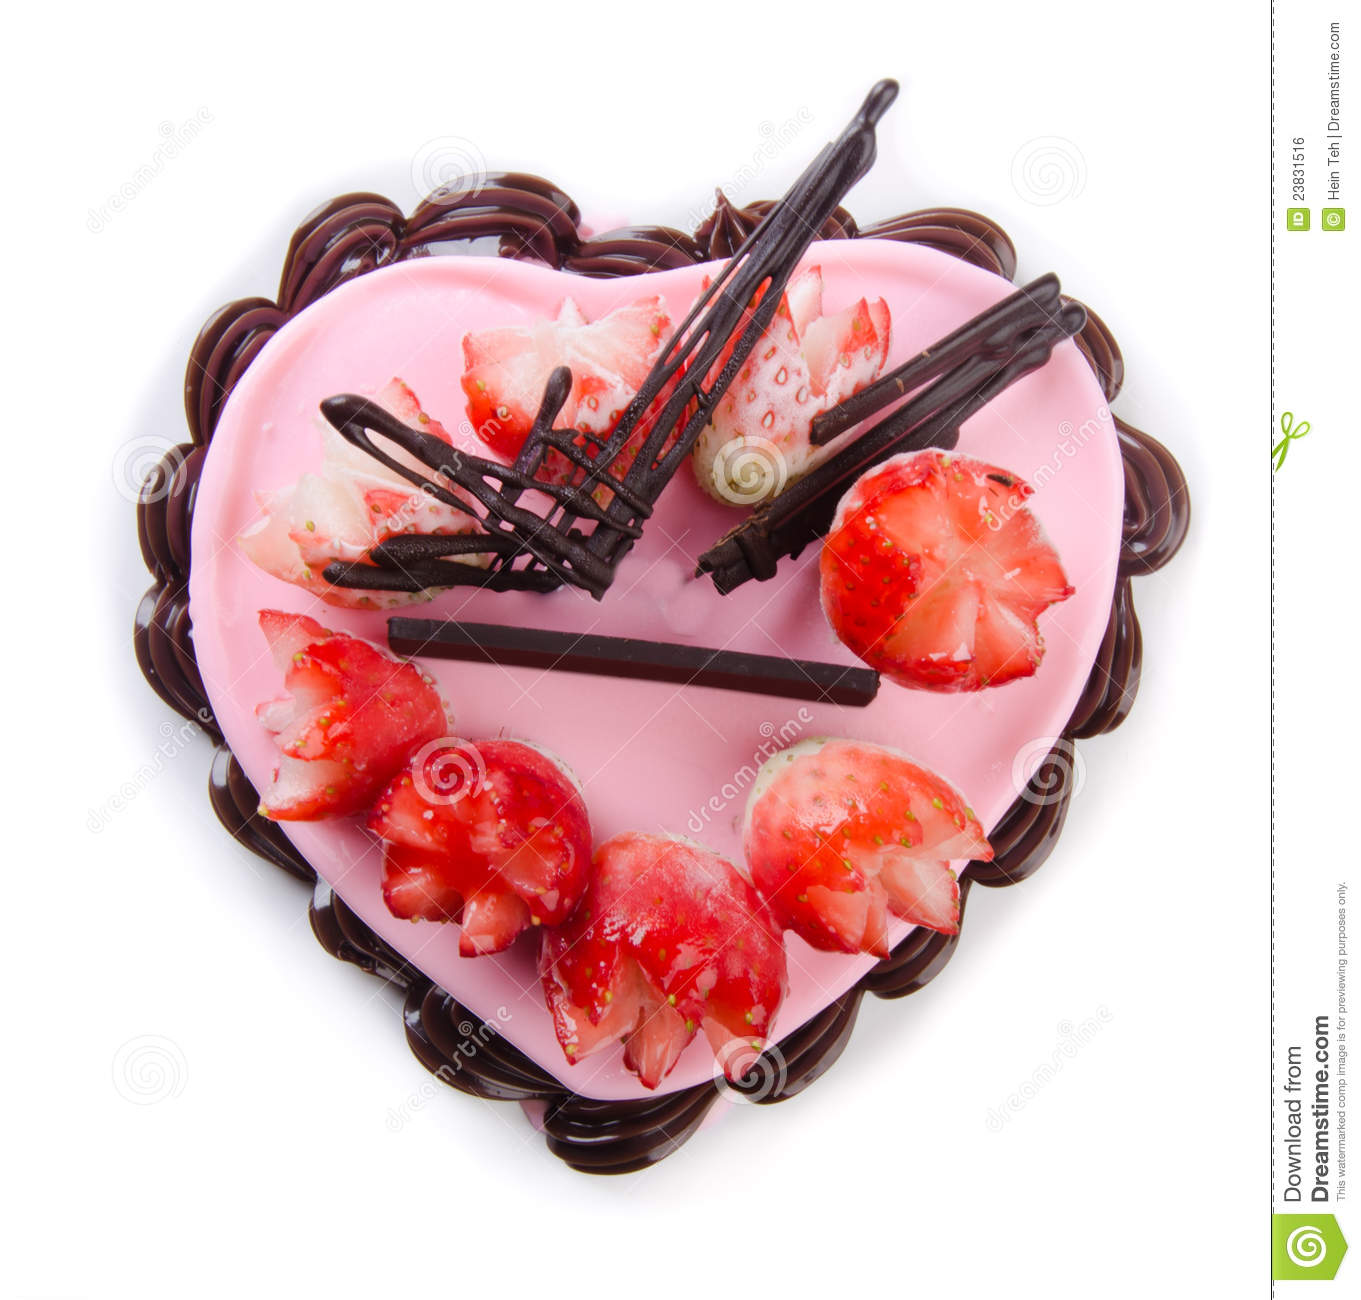 Heart Shaped Cake Stock Photos : Heart Shaped Cake Royalty Free Stock Image - Image: 23831516